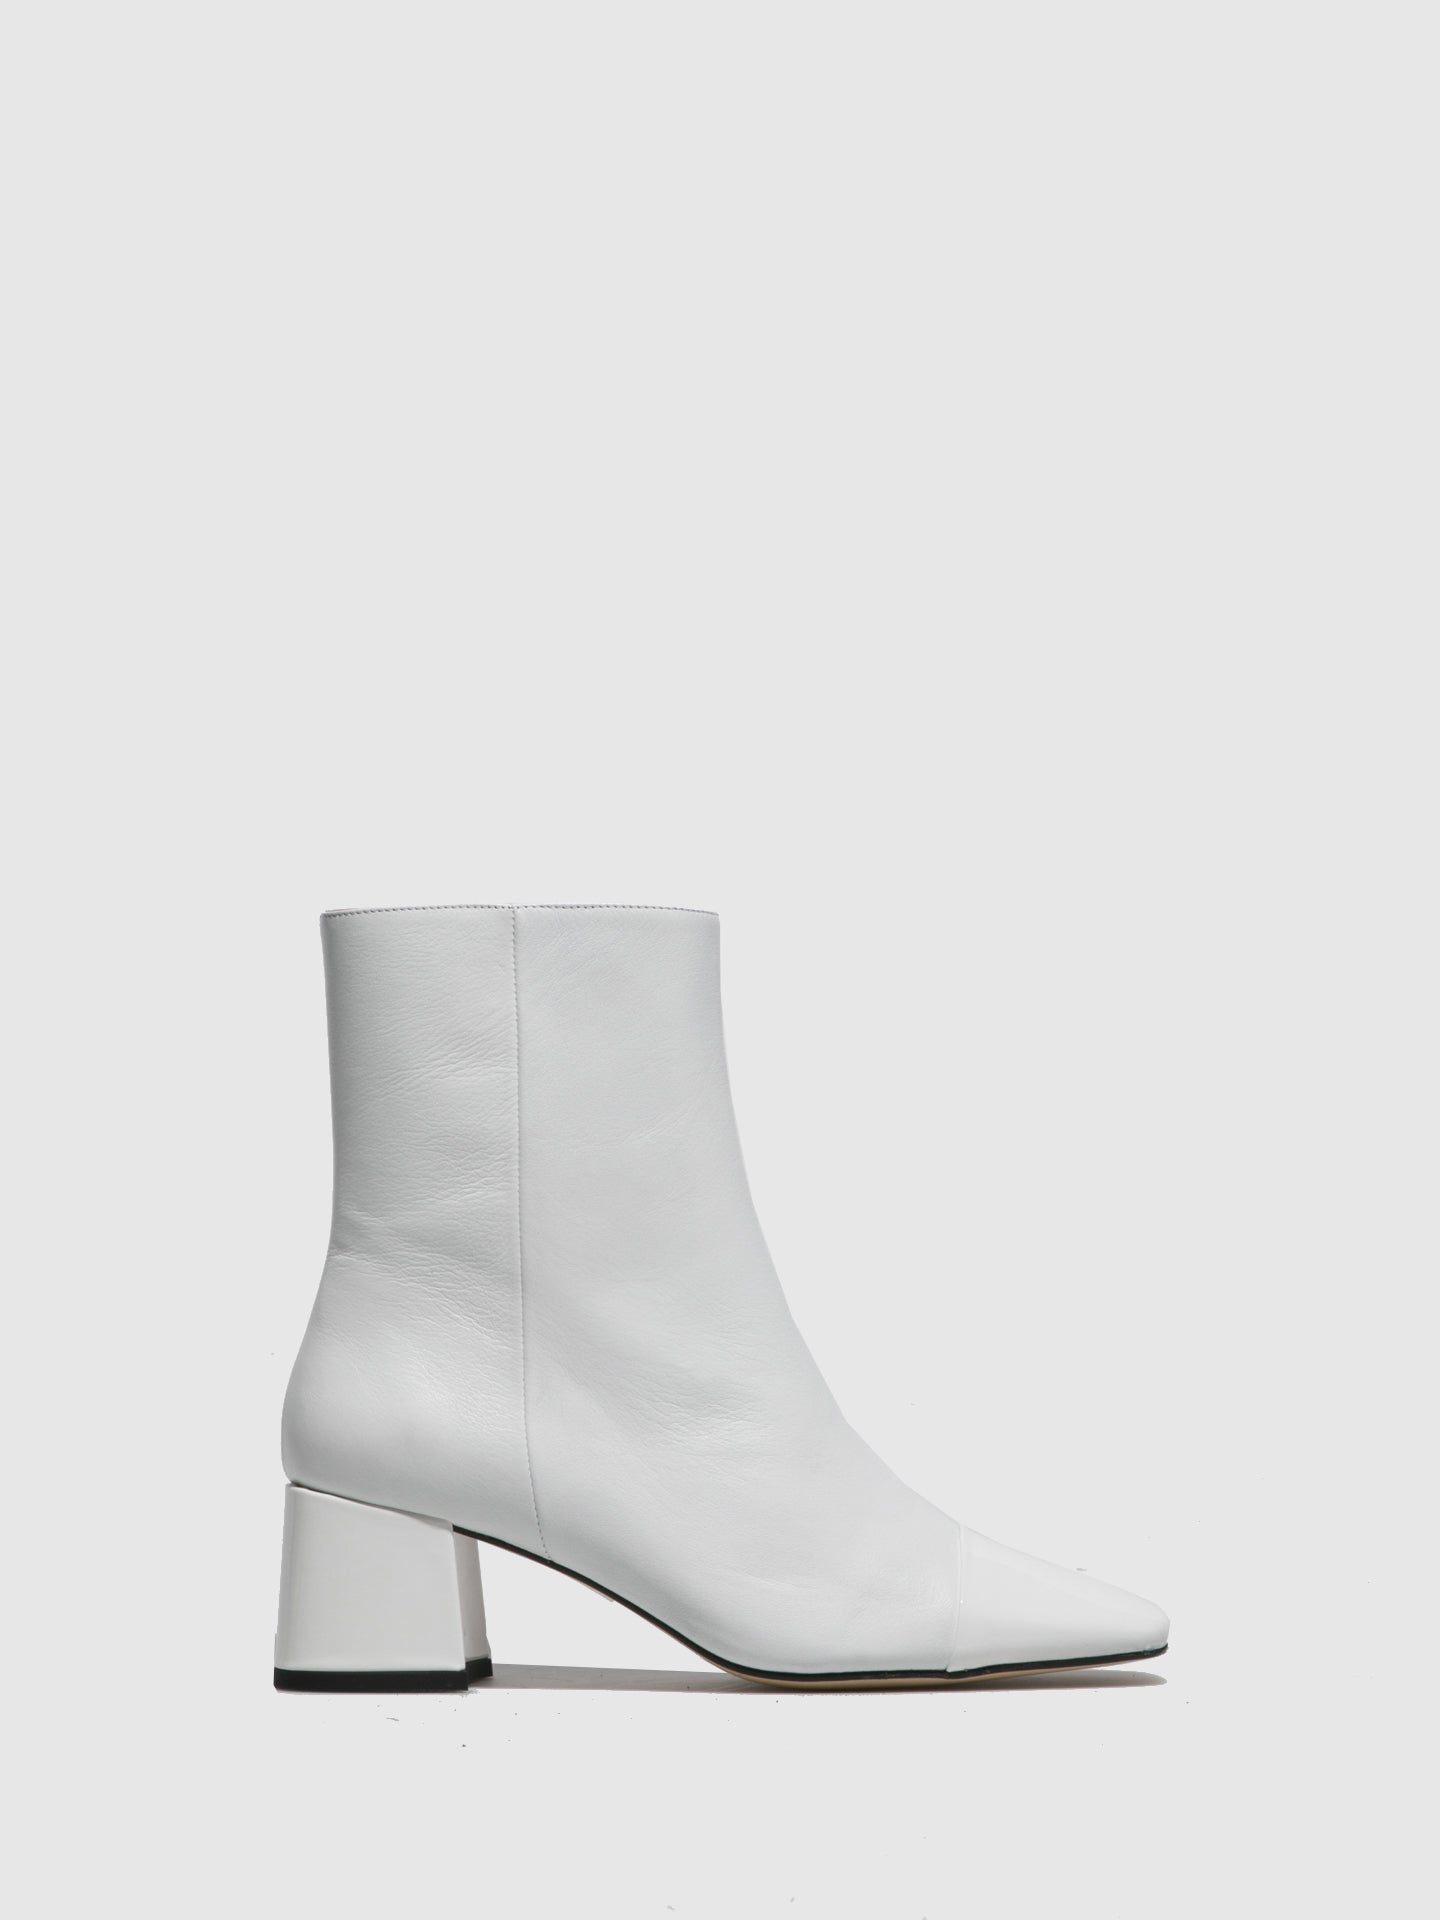 Sofia Costa White Zip Up Ankle Boots